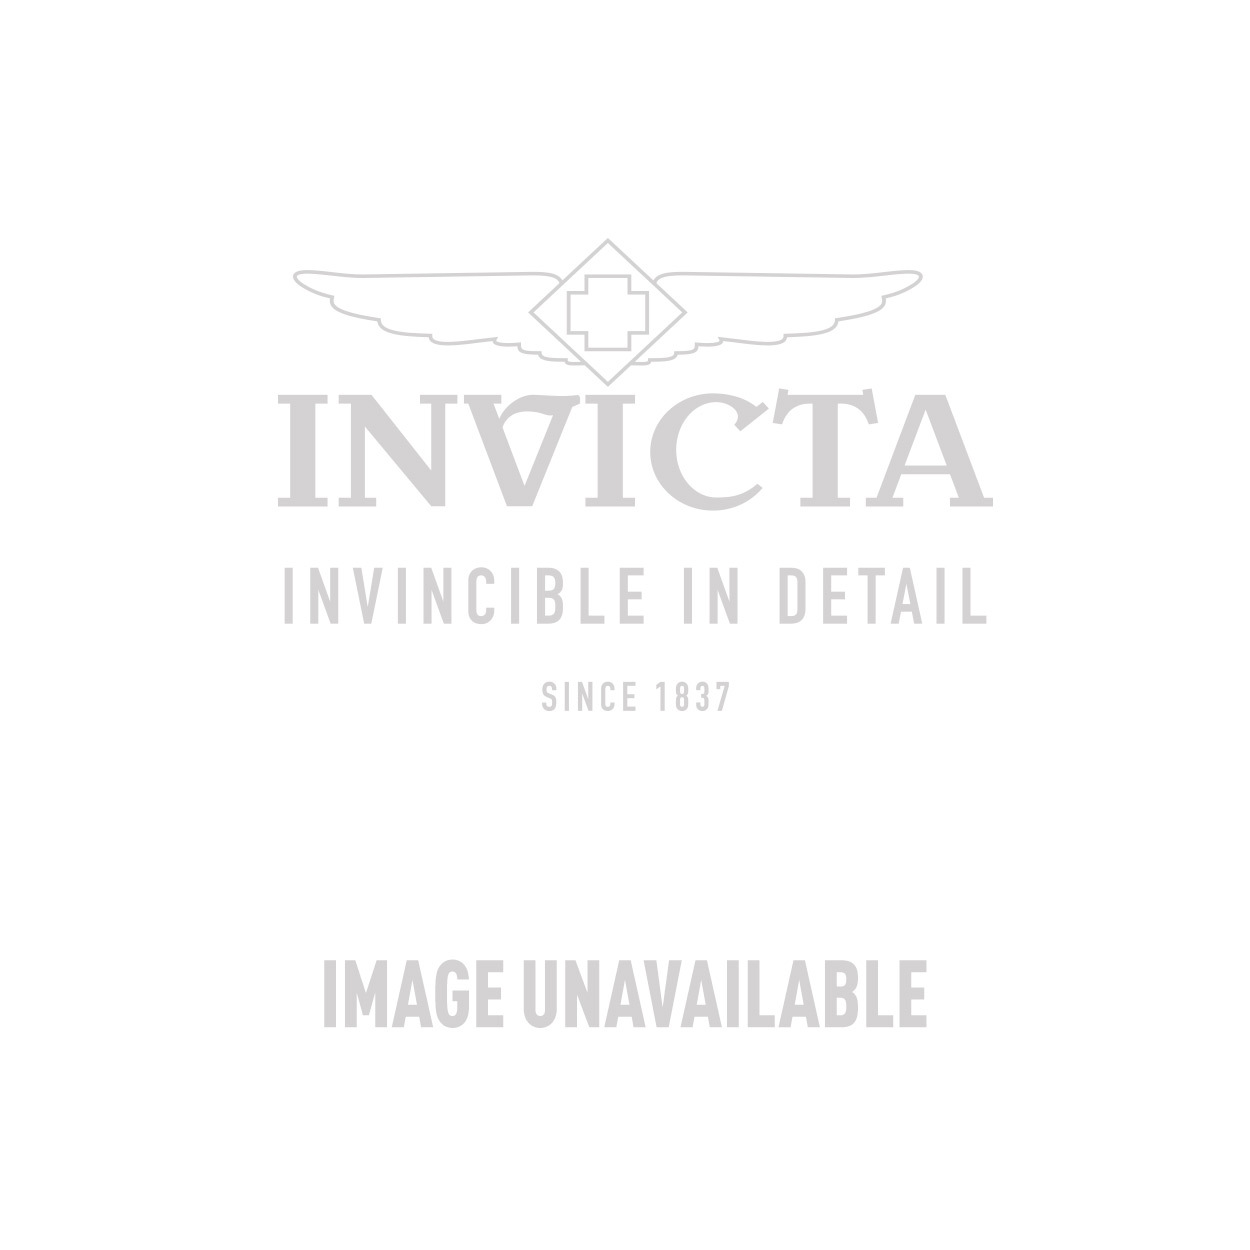 Invicta Bolt Thunderbolt Swiss Made Quartz Watch - Gold, Stainless Steel case with Black tone Silicone band - Model 21362